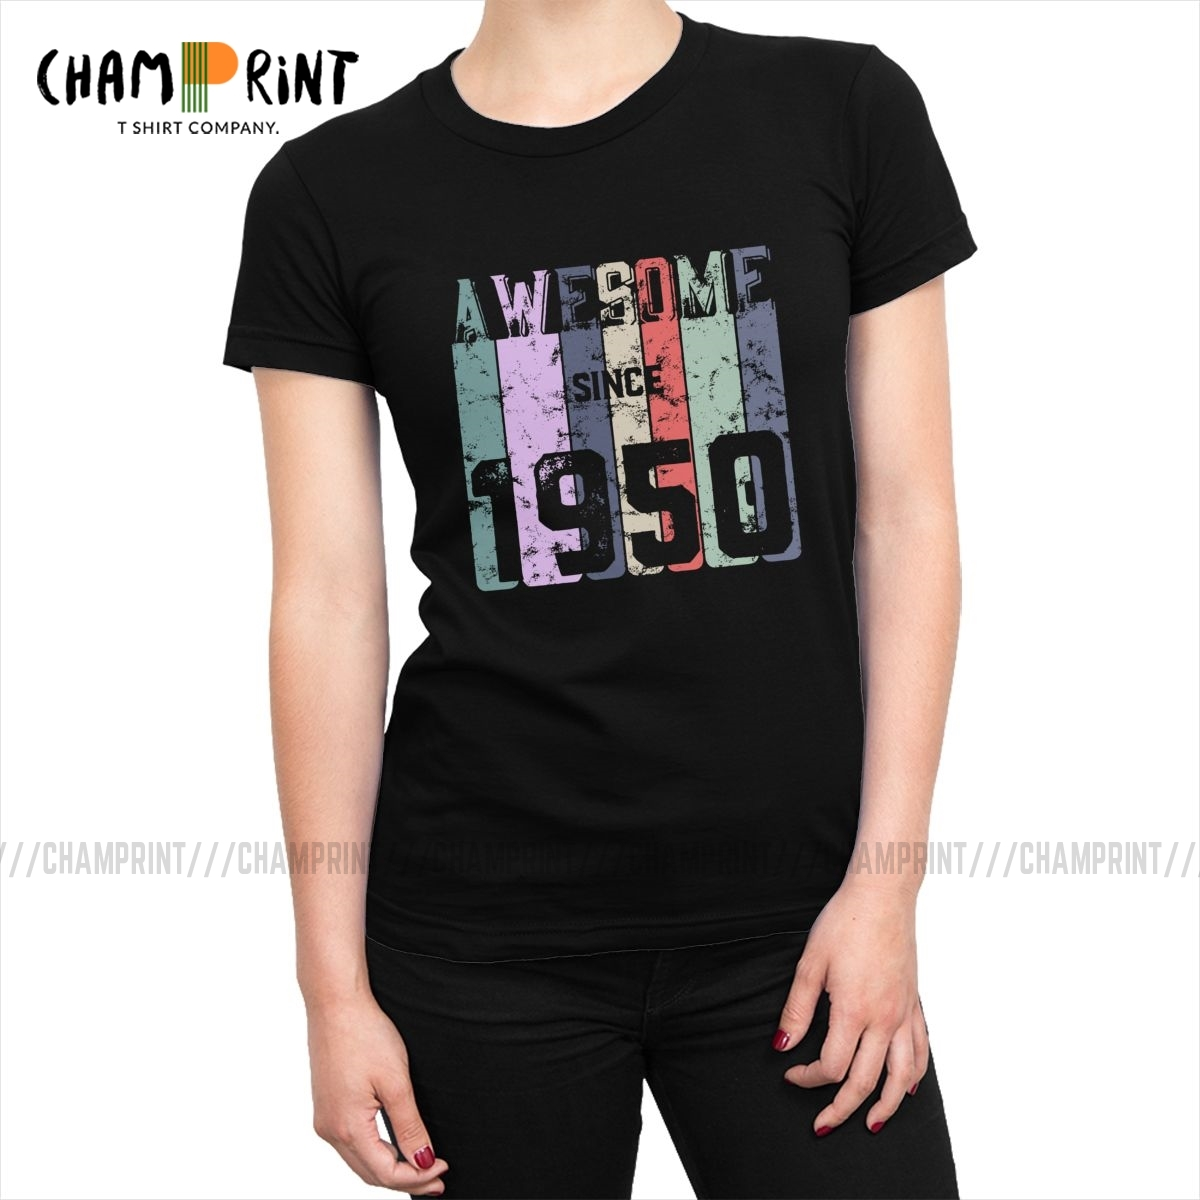 Awesome Since 1950 T-<font><b>shirt</b></font> Women's 70th <font><b>Birthday</b></font> Gift Tshirt Fashion Tops Tees Streetwear <font><b>70</b></font> Years Old Female Clothing image